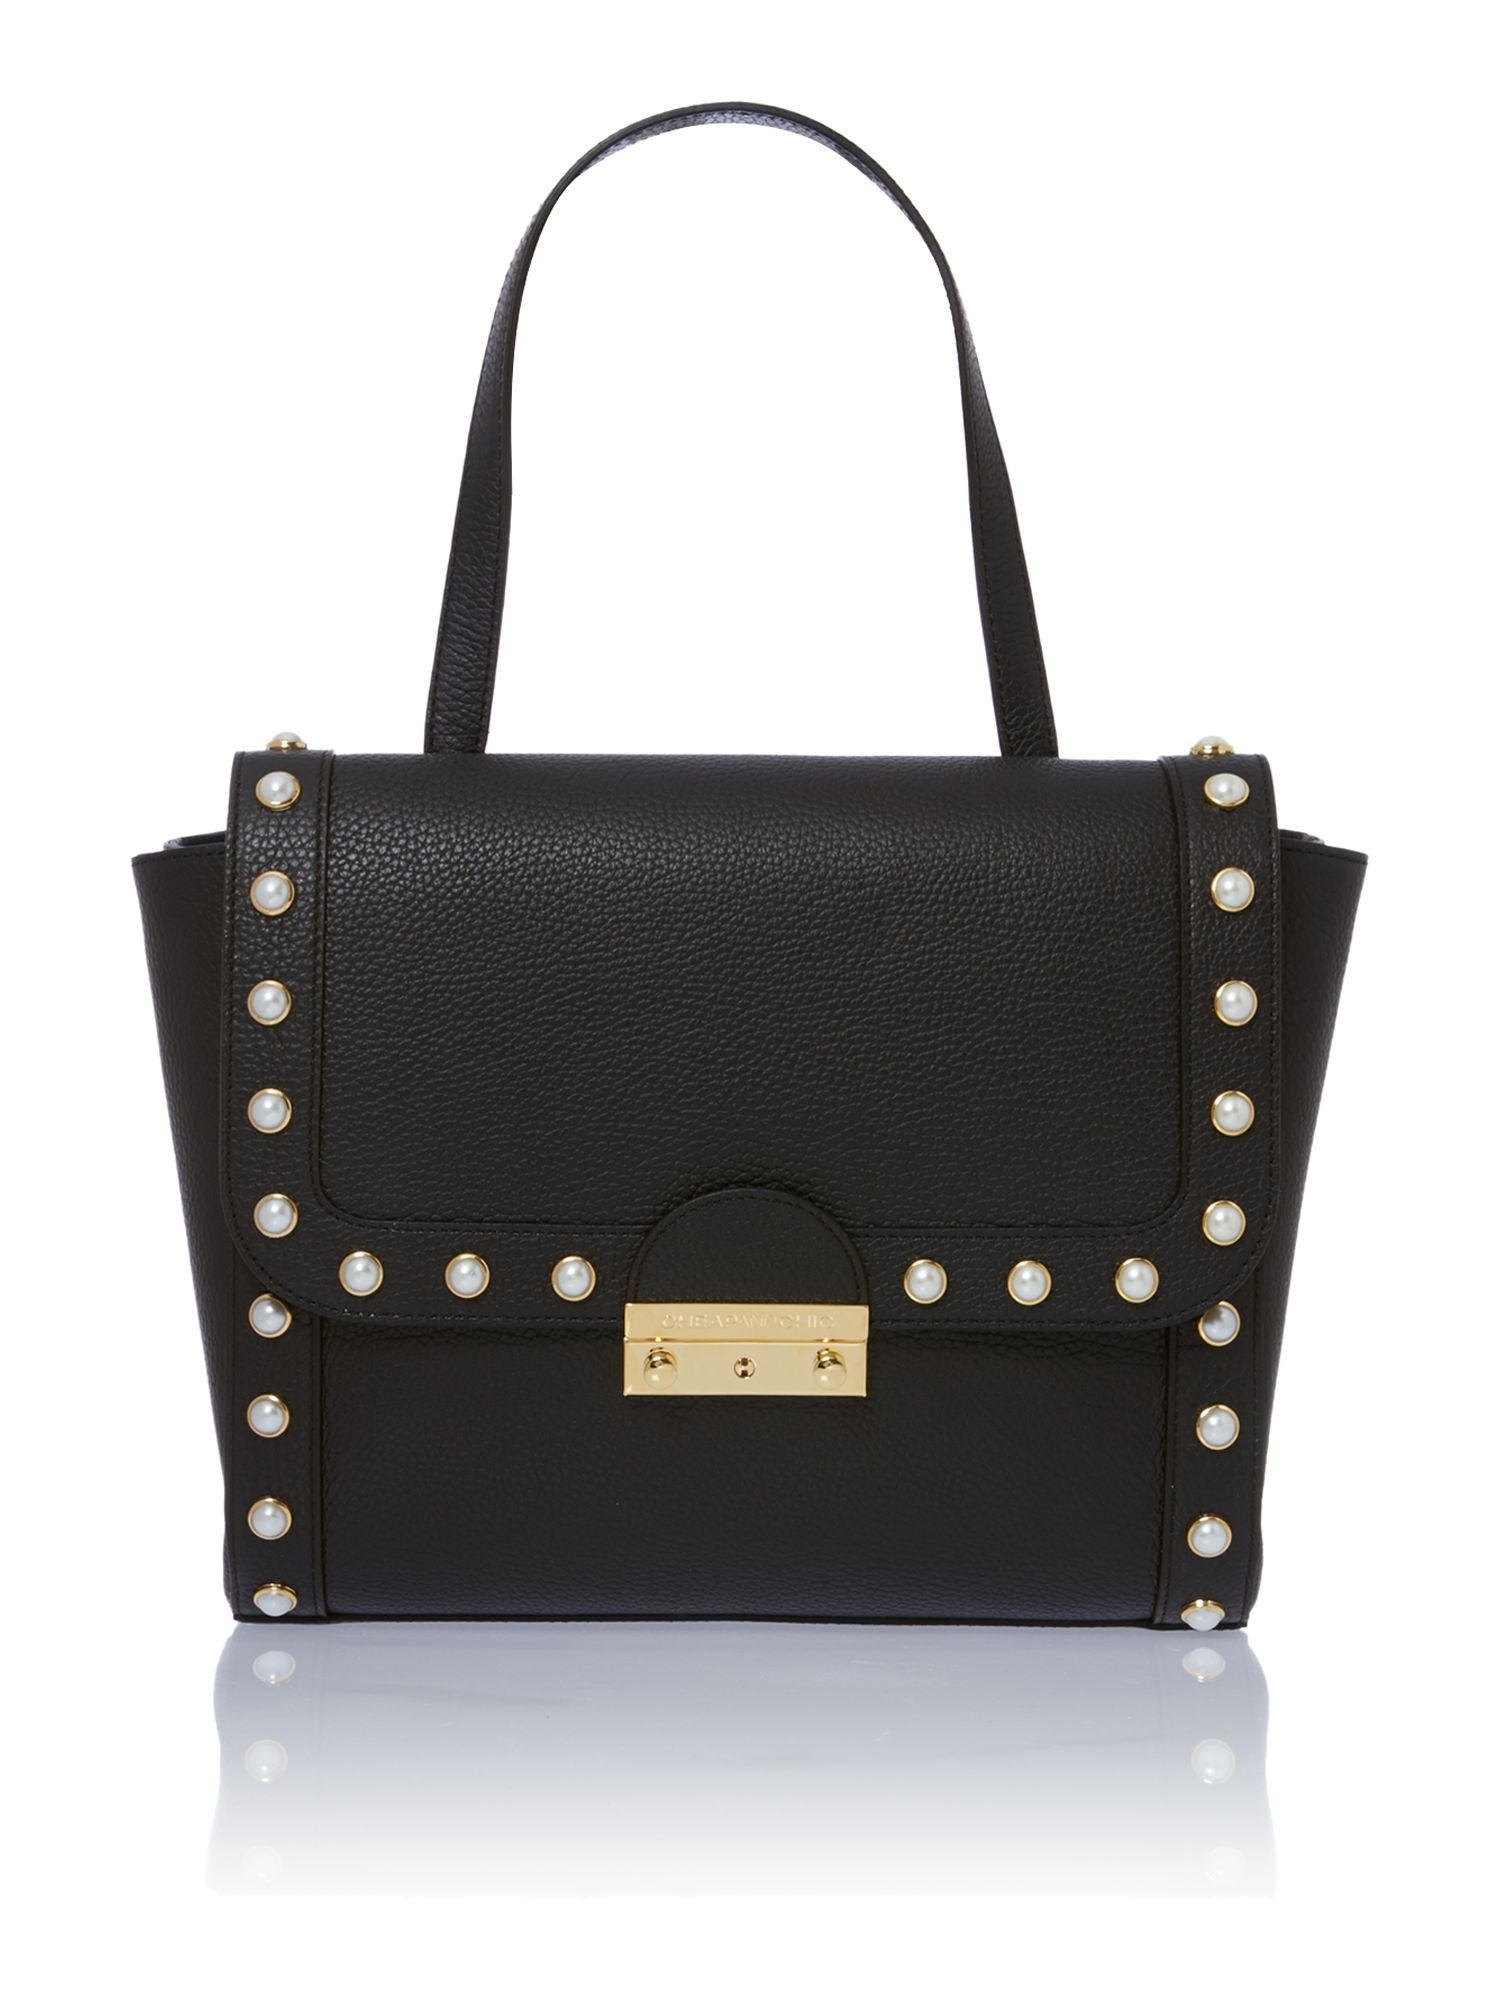 Pearl black satchel bag